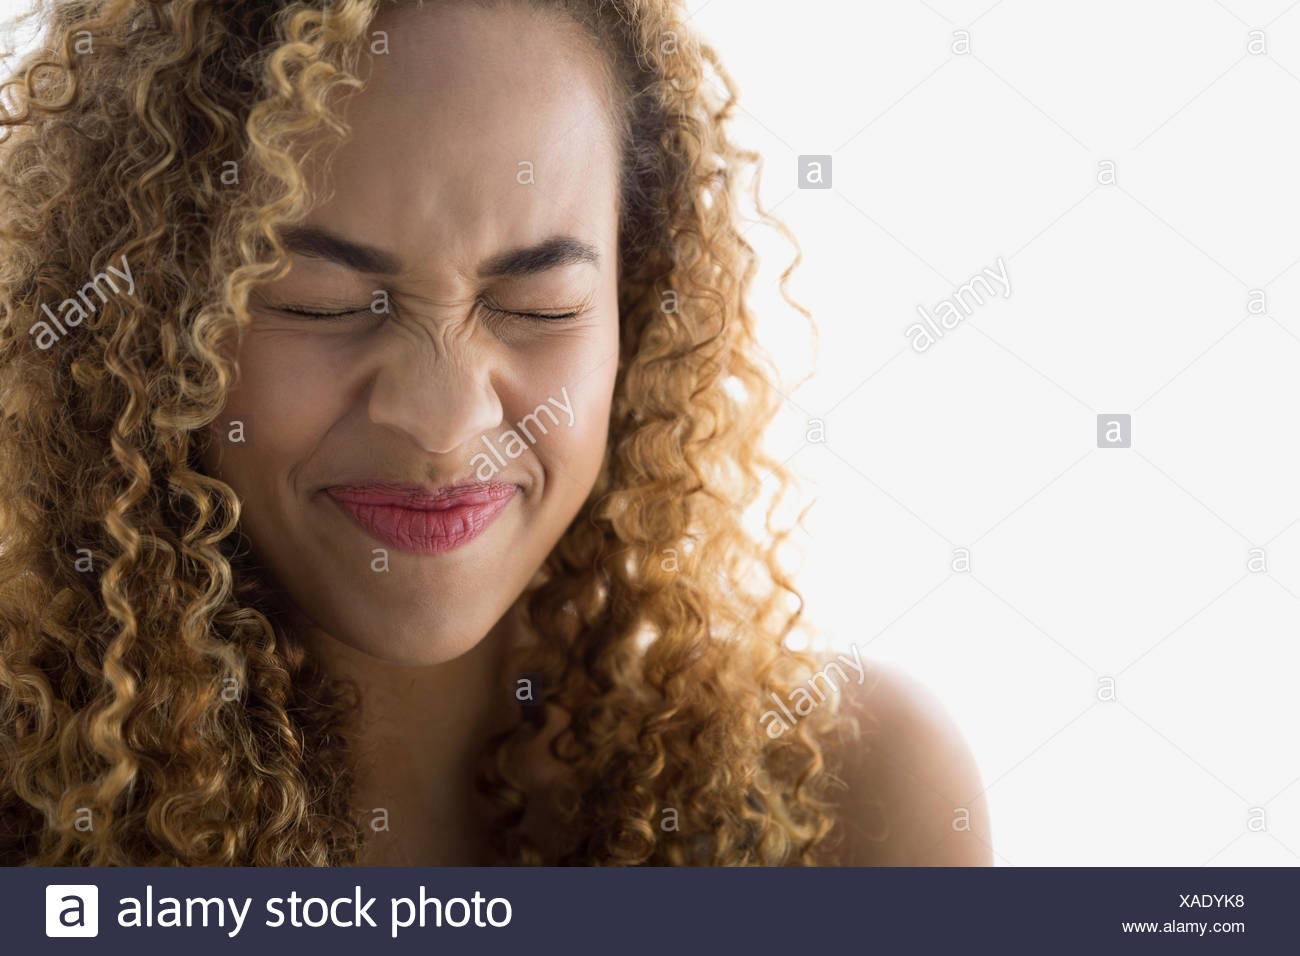 Woman with curly hair making a face - Stock Image